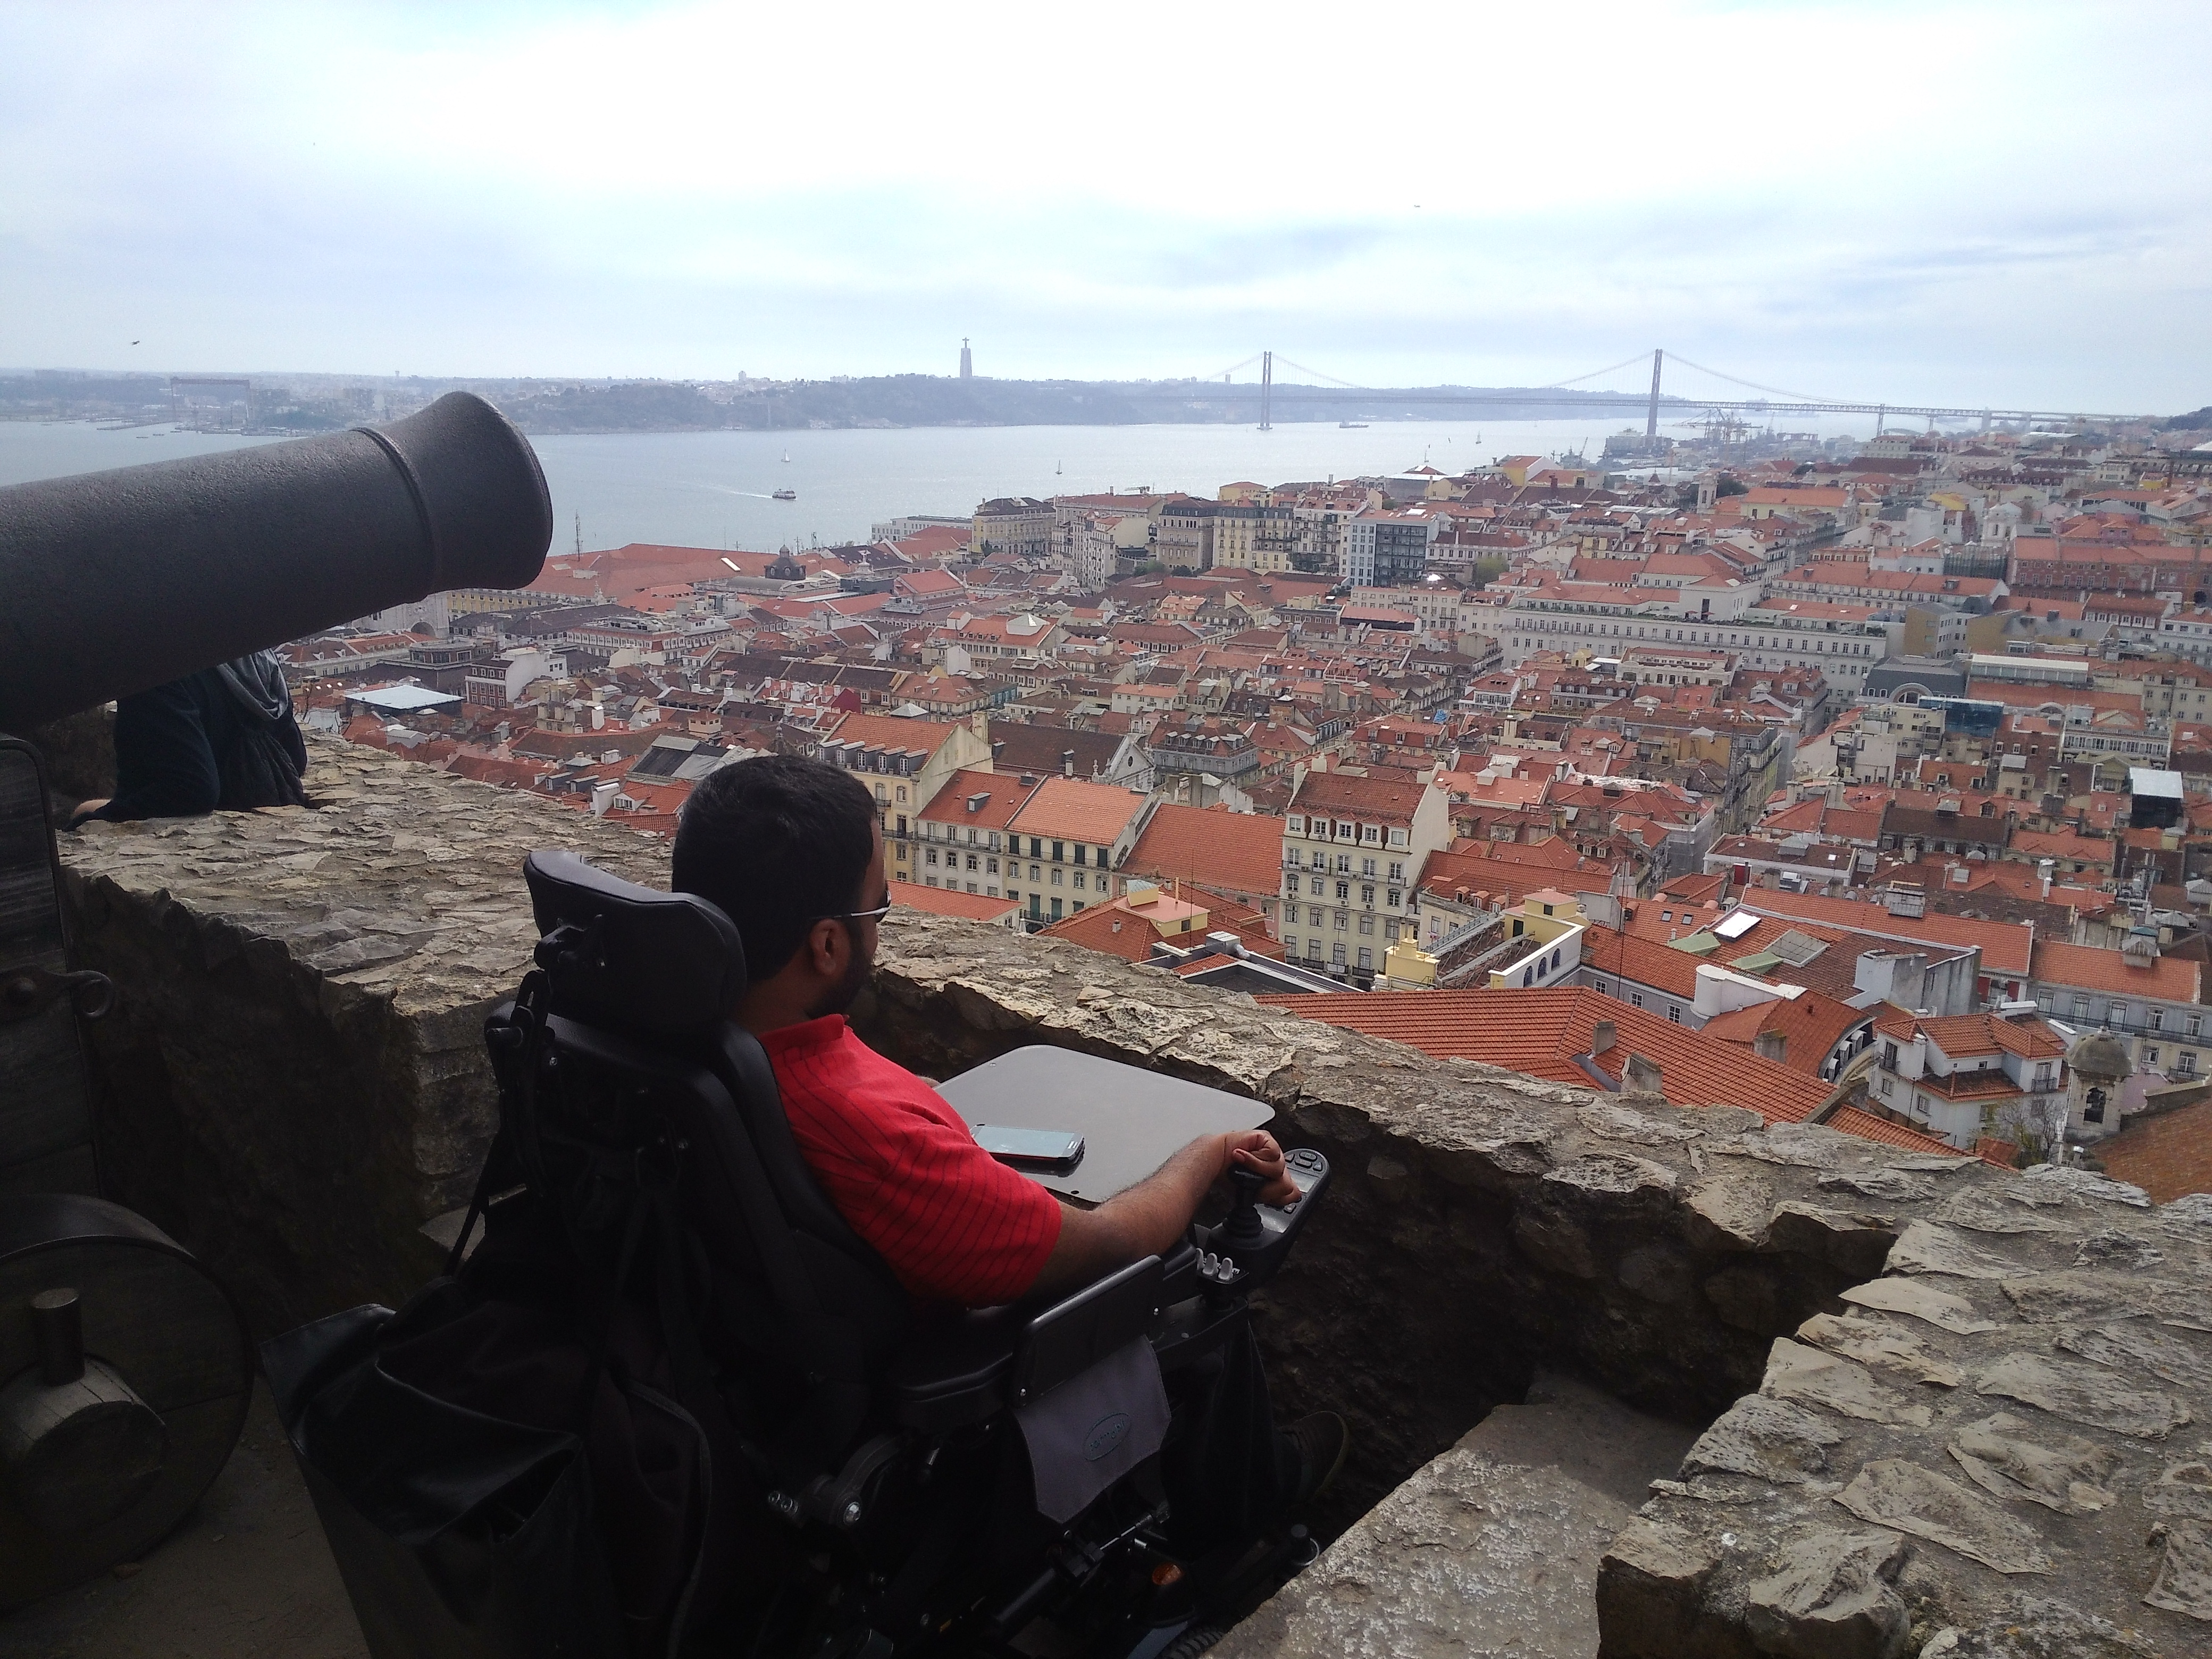 Looking out over Lisbon from the São Jorge Castle.